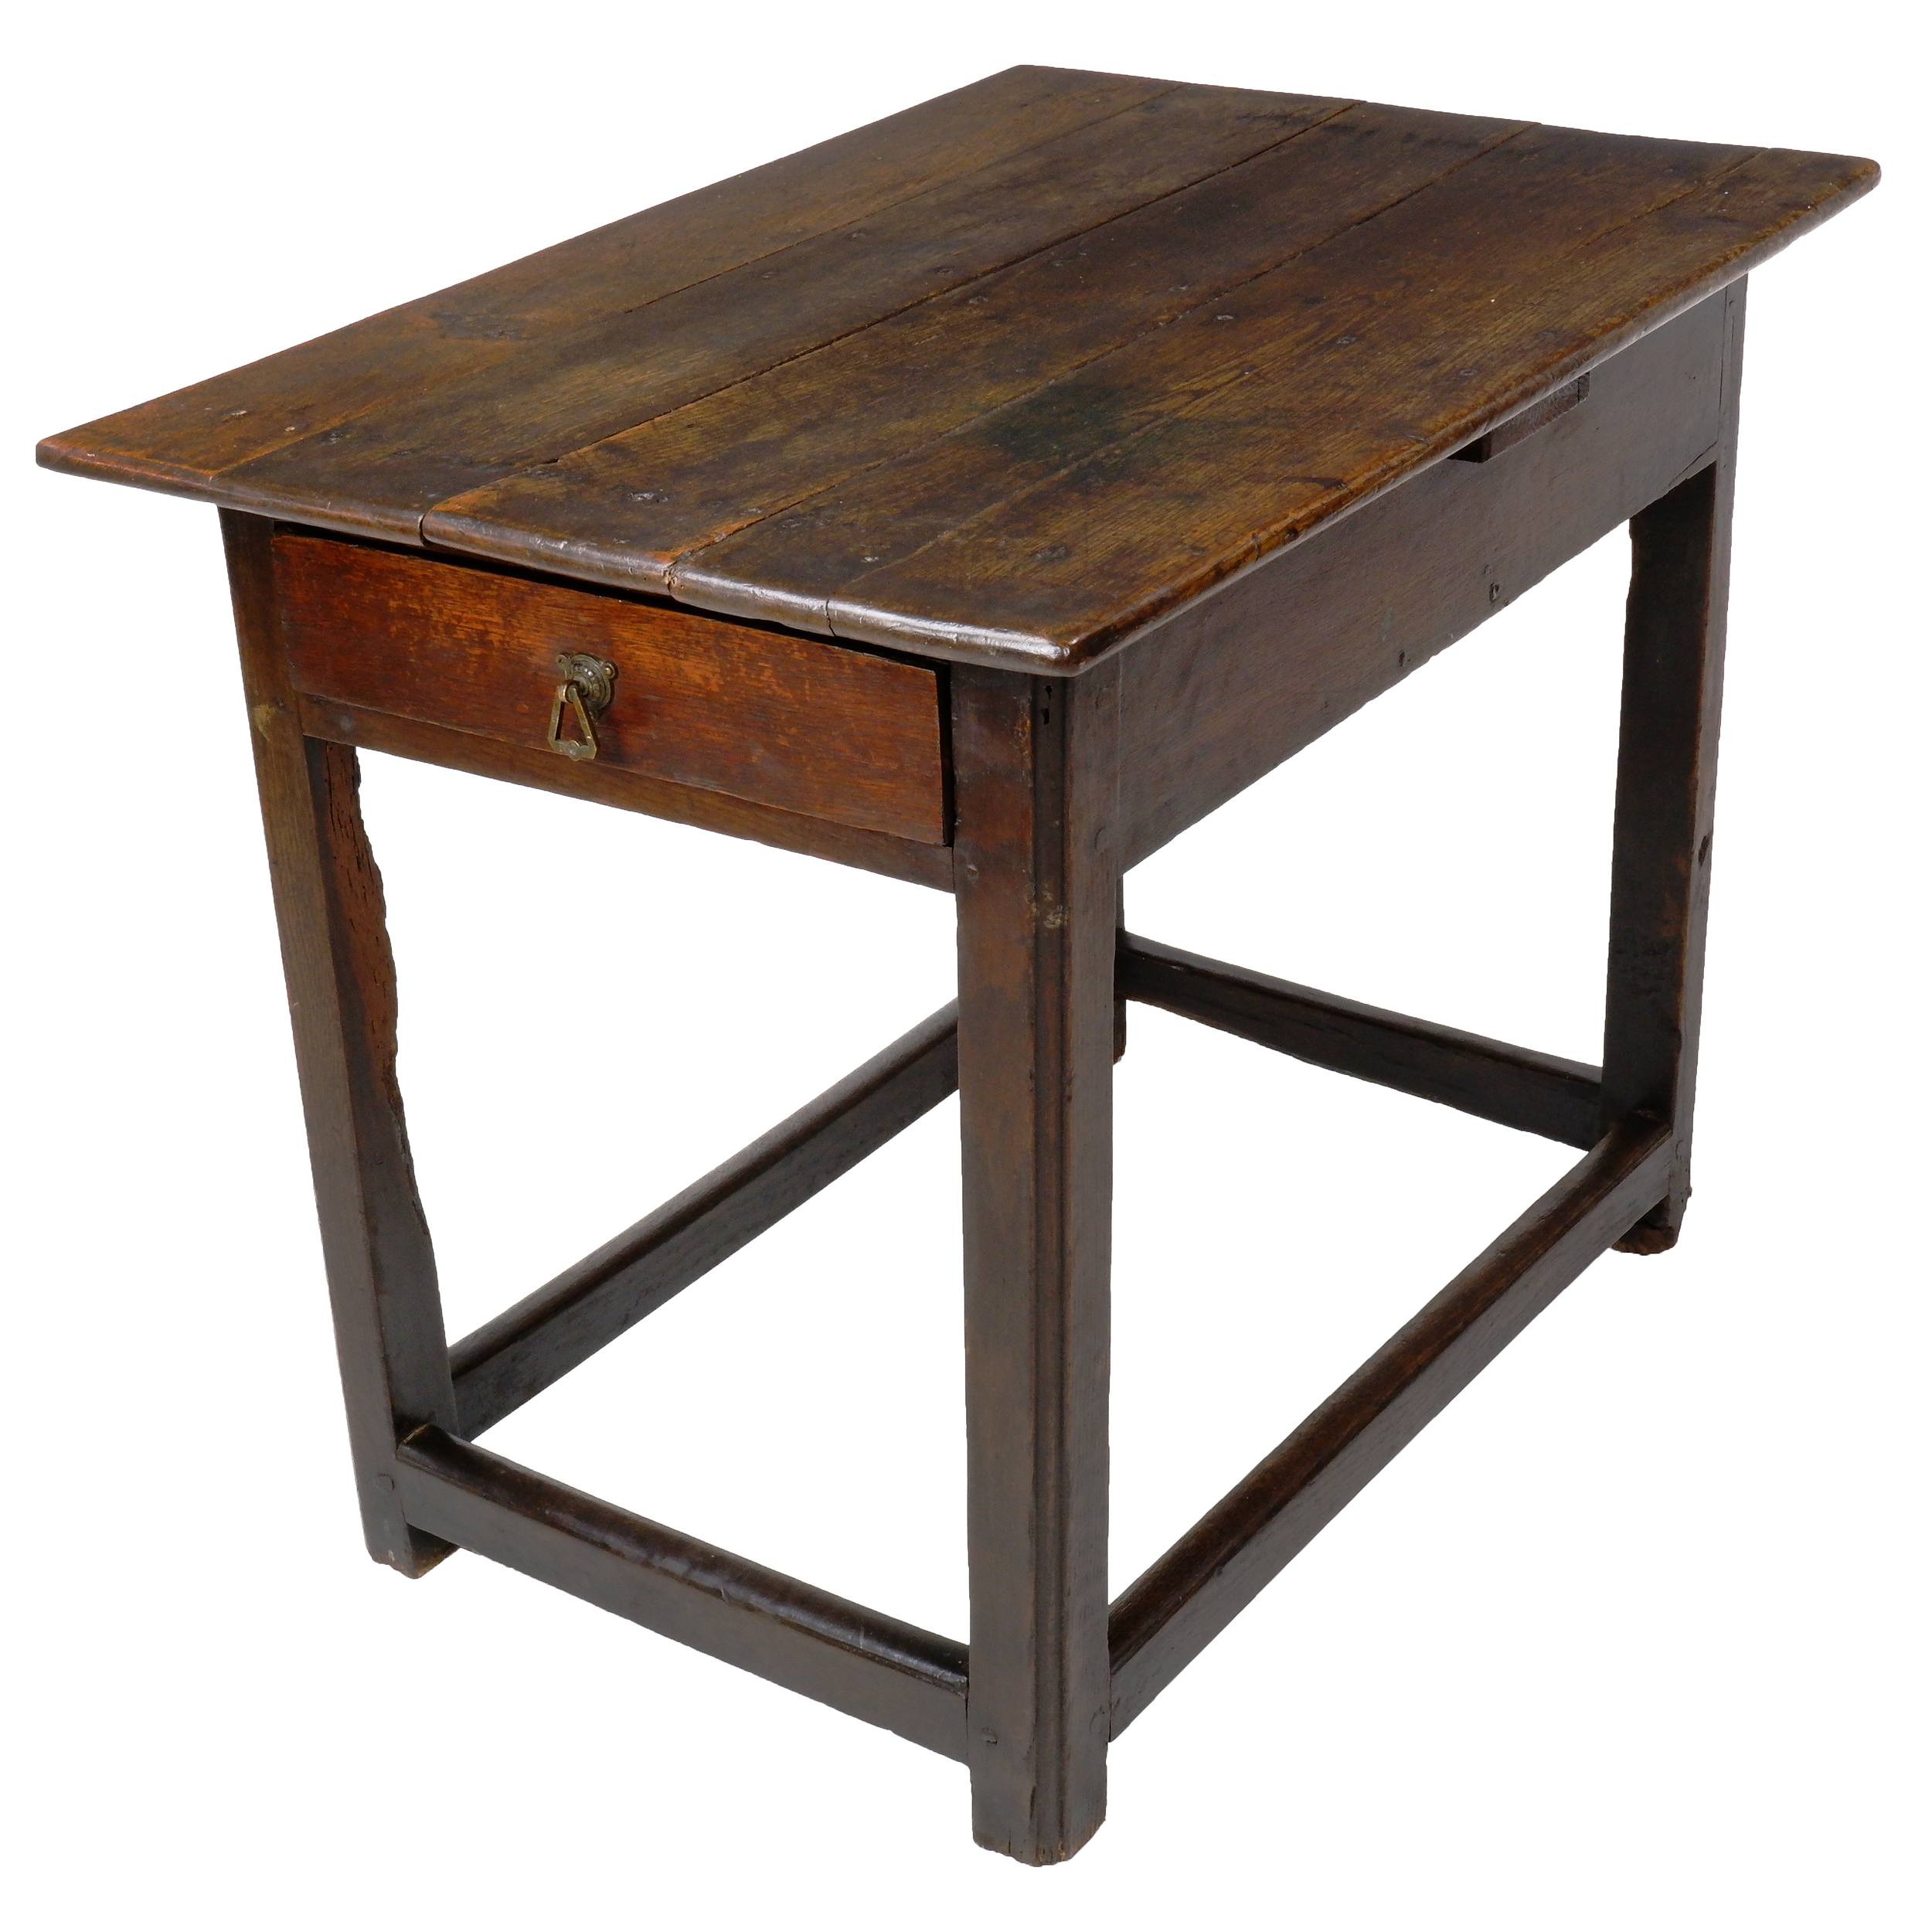 'Georgian Oak Side Table with End Drawer, Late 18th Century'